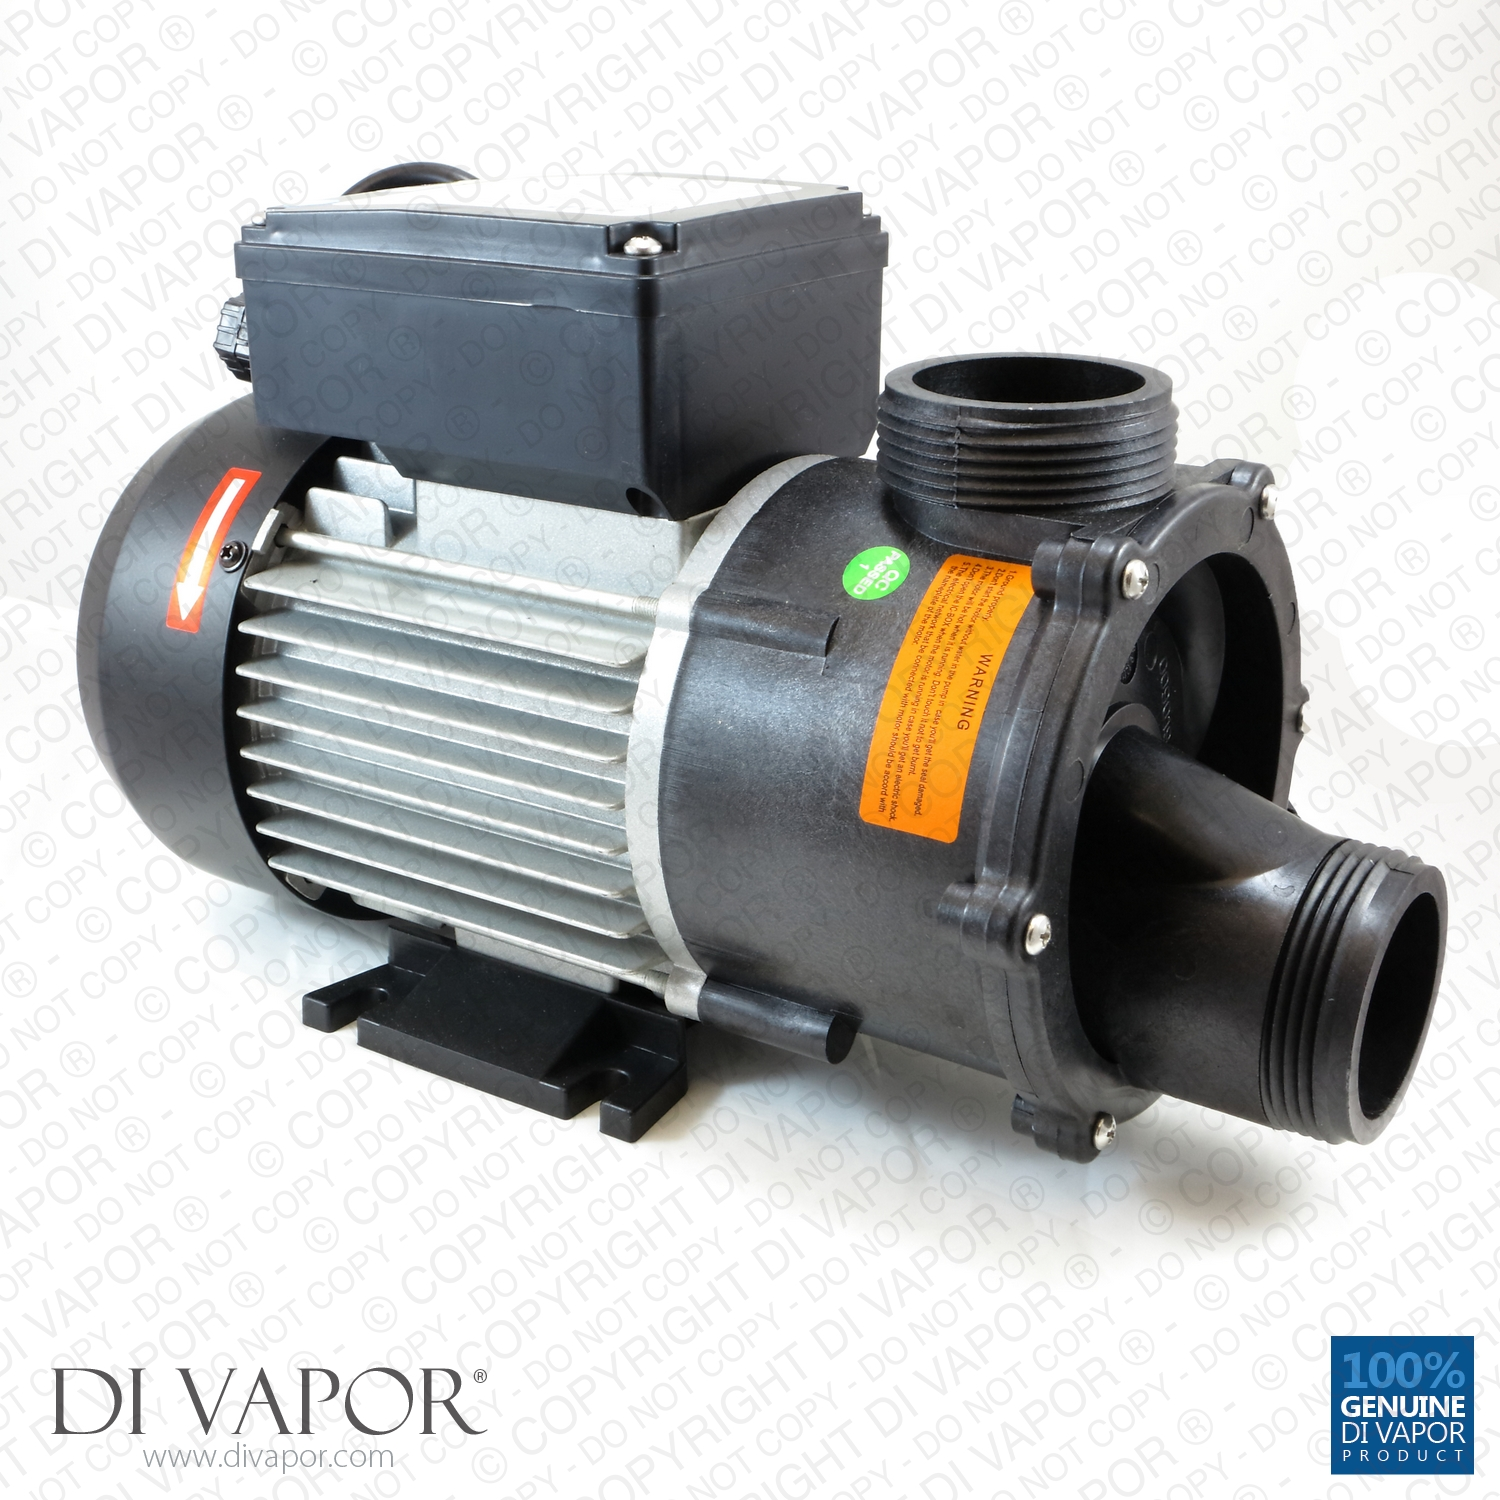 Dxd 310b 1 0hp Water Pump For Hot Tub Spa